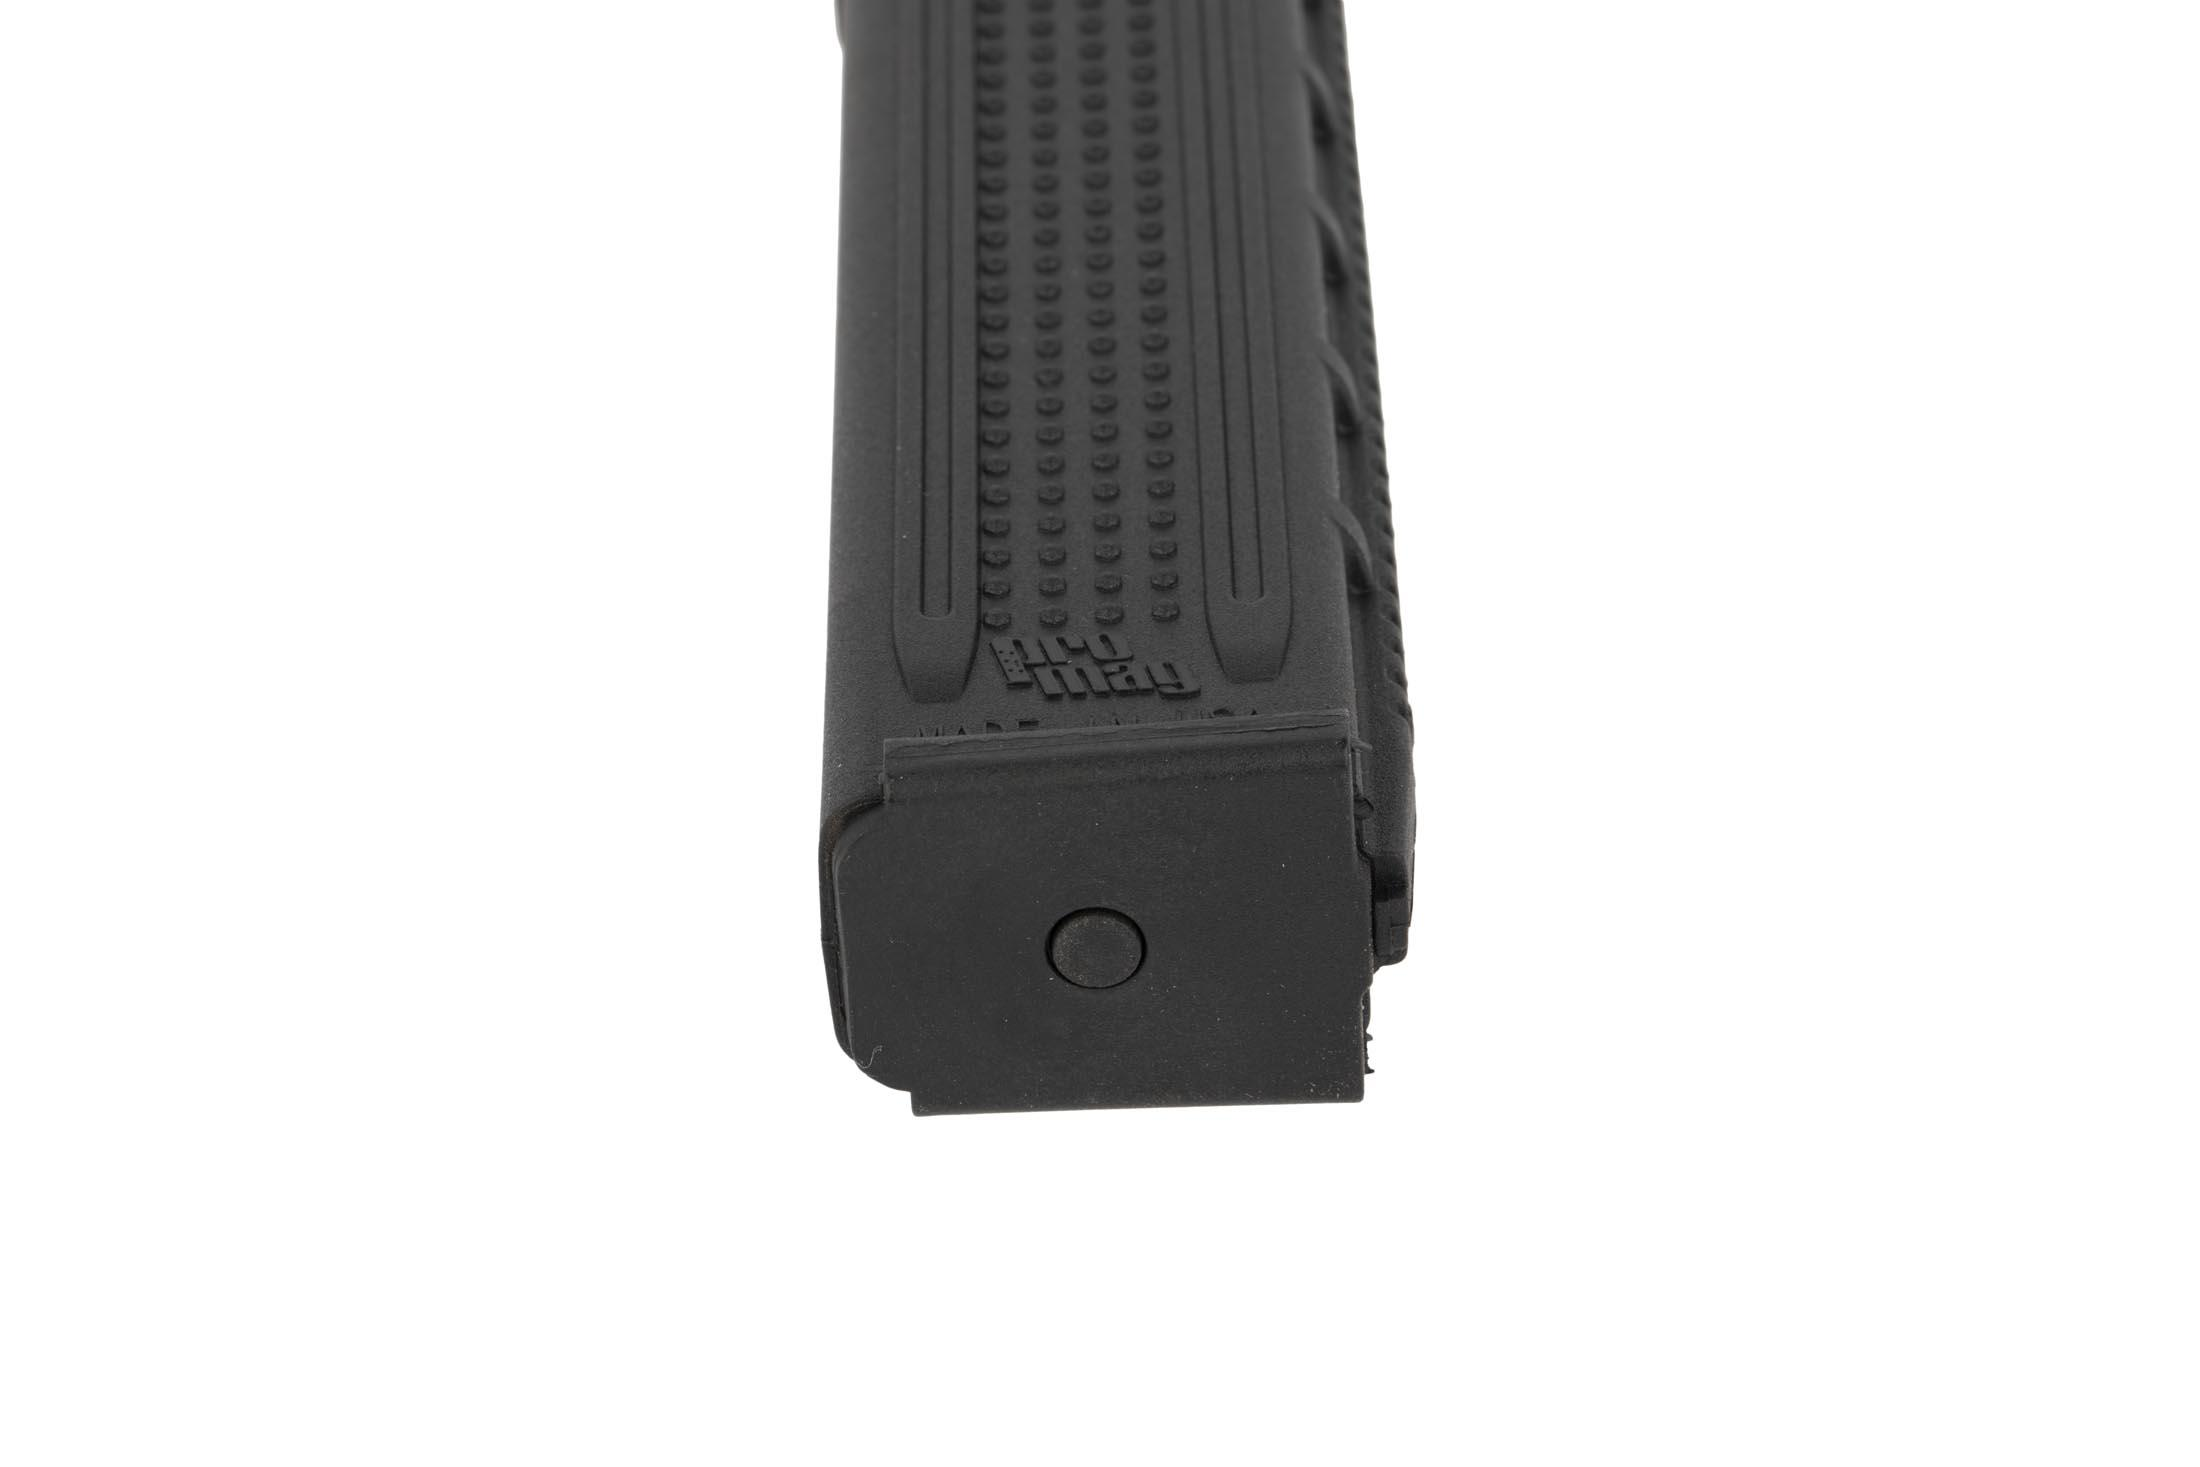 The ProMag colt pattern 9mm magazine is made from polymer and holds 32 rounds of ammunition